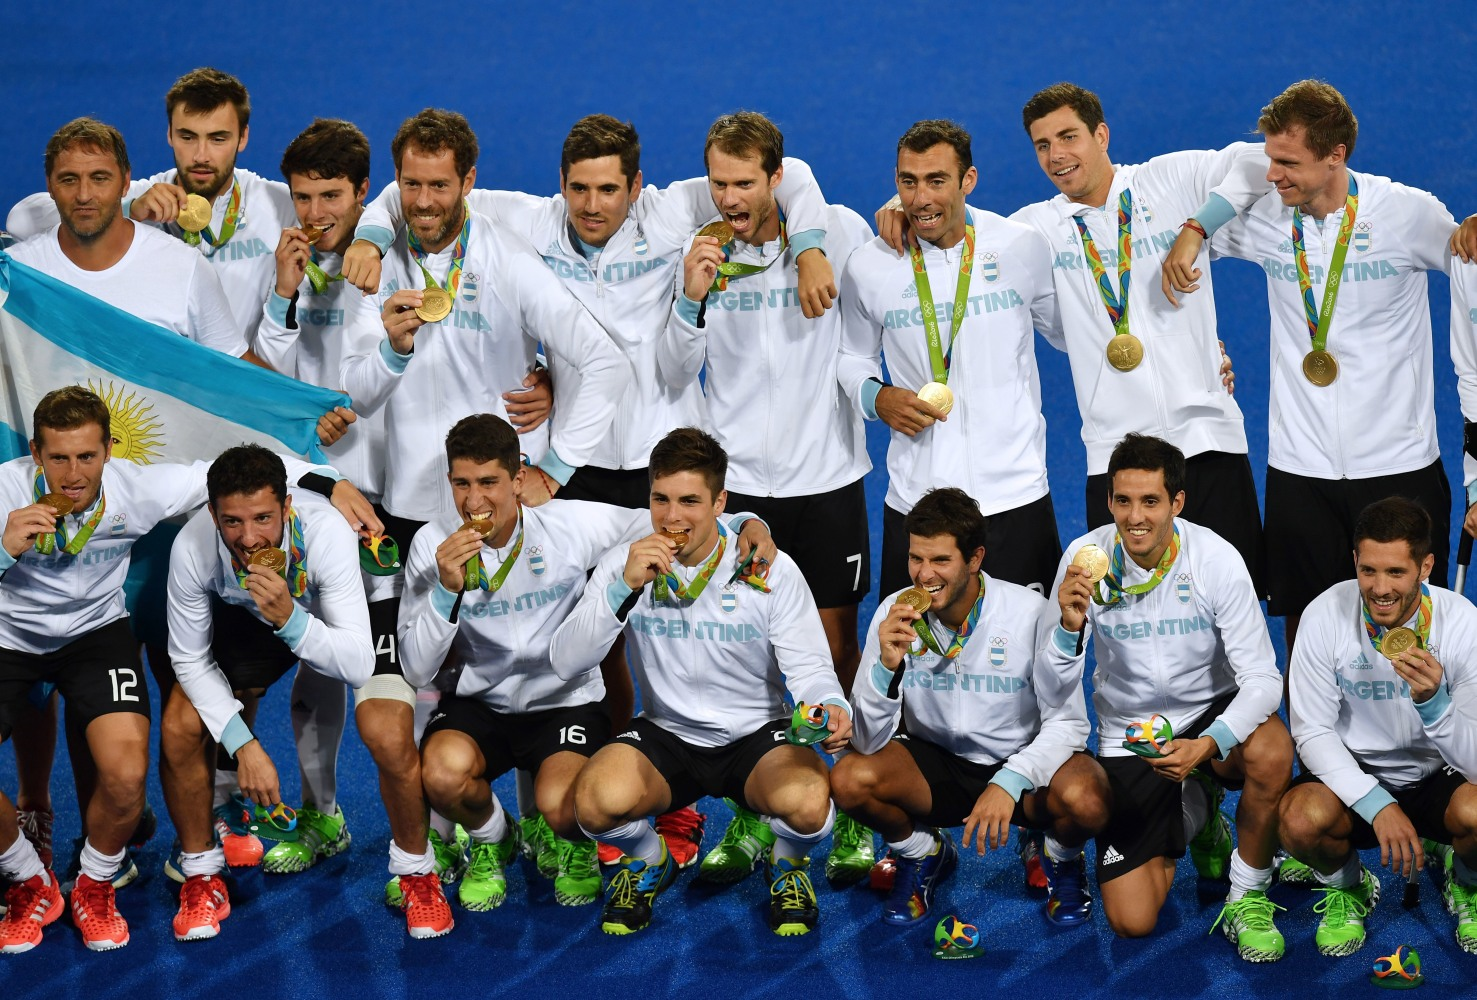 Argentina mens national field hockey team